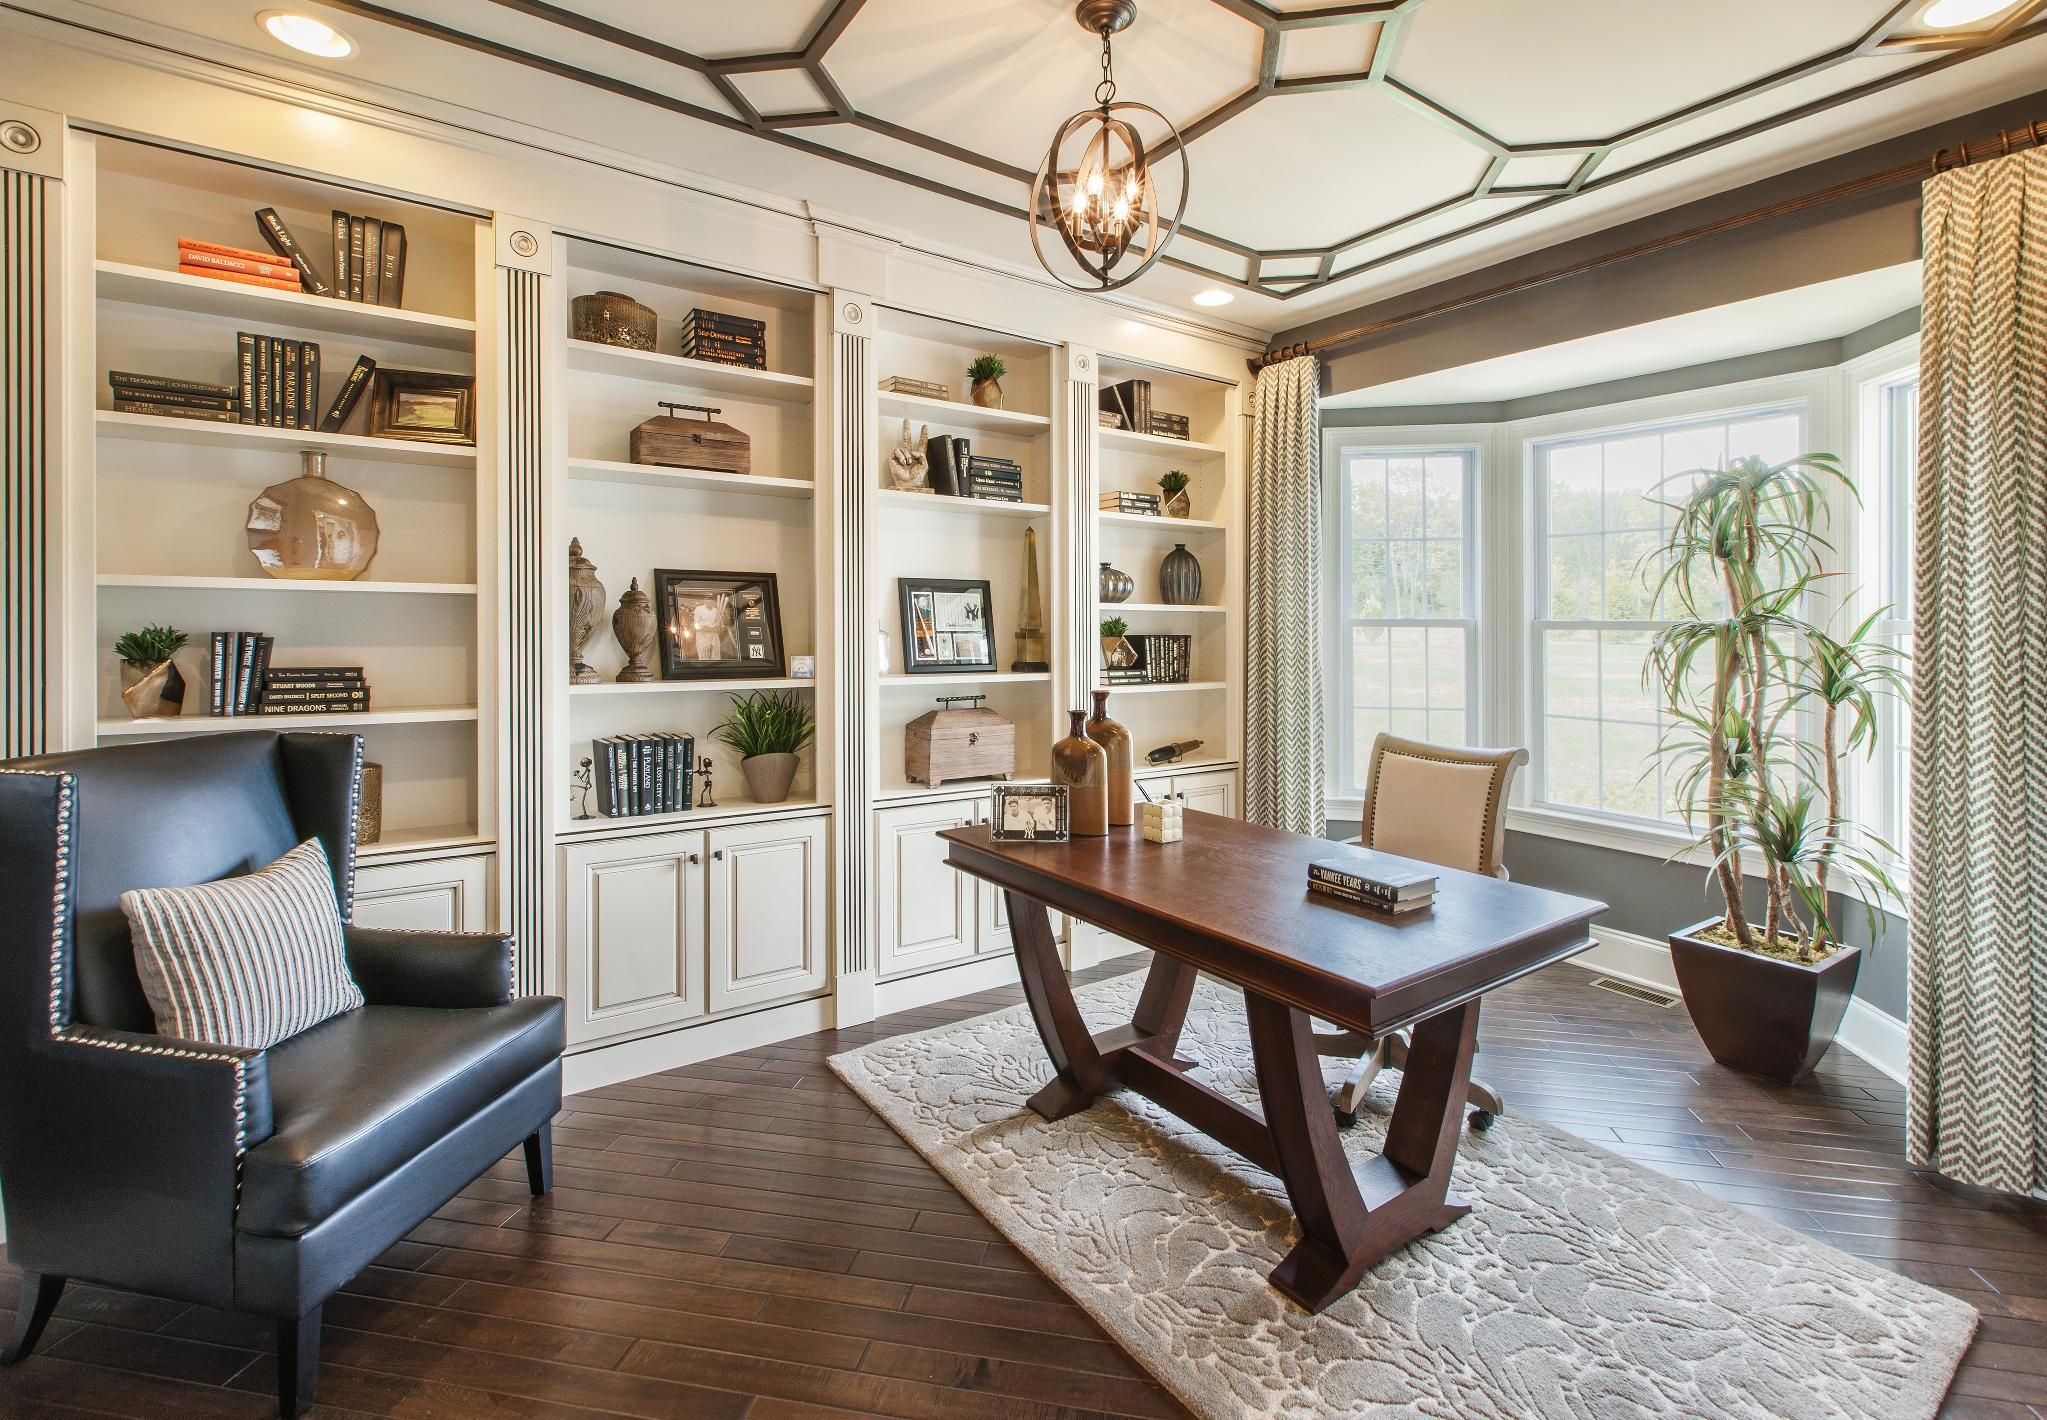 Mountain View At Hunterdon Is An Outstanding New Home Community In Flemington NJ That Offers